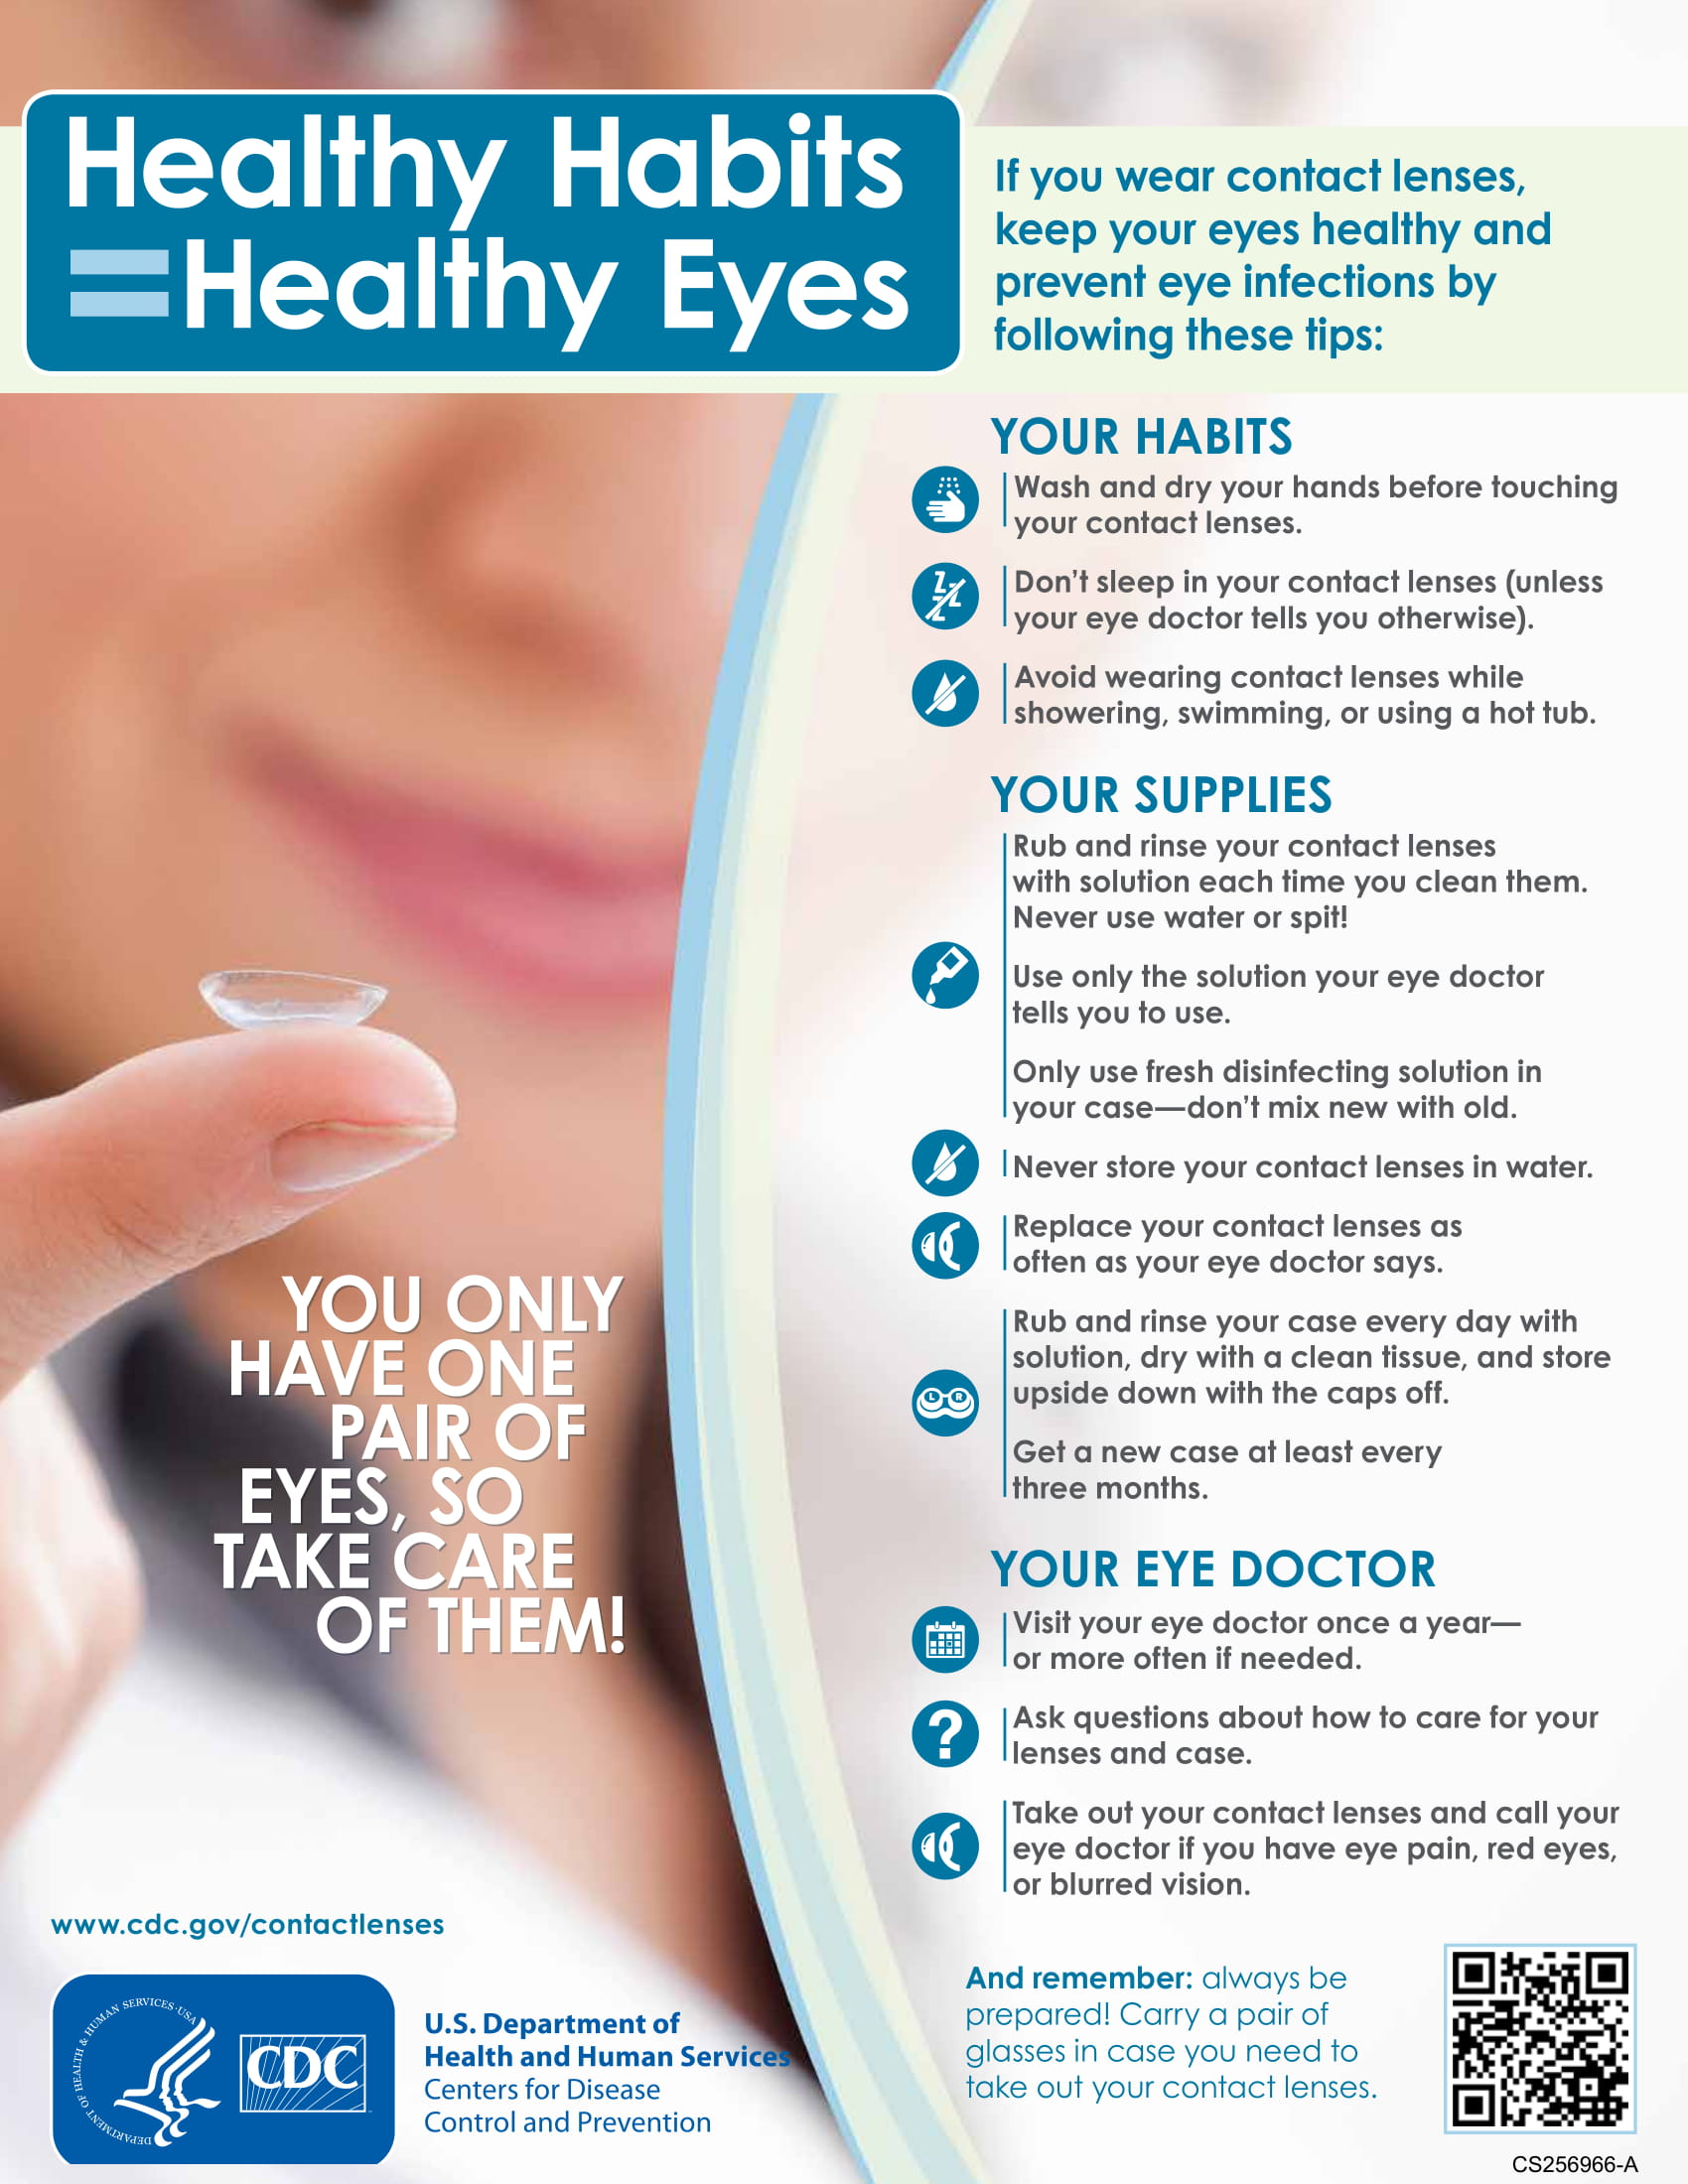 9eab71686c5 Contact Lens Health Week - Health Care Alliance for Patient Safety ...